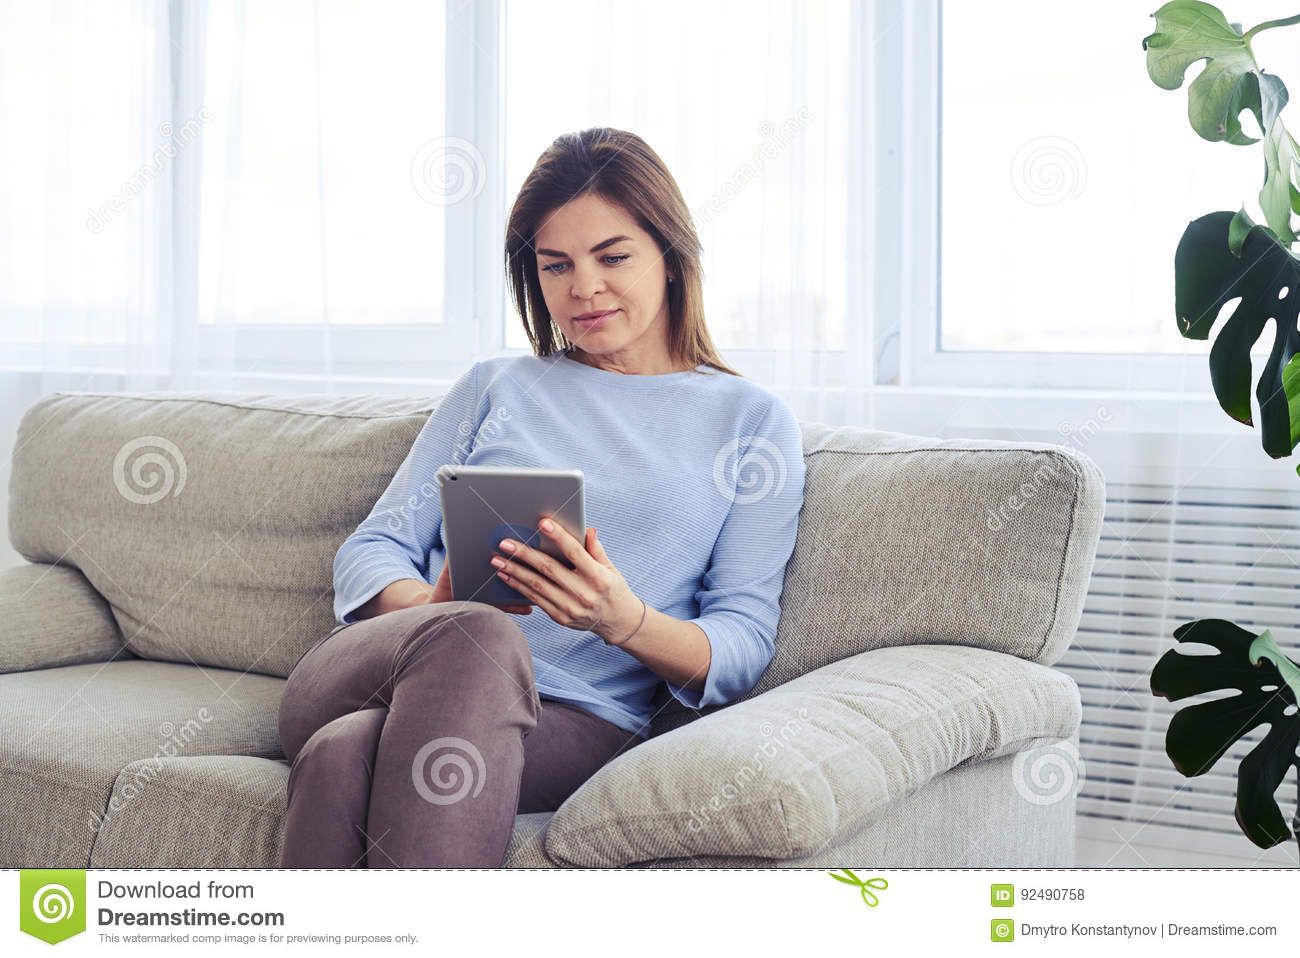 Beautiful madam of age 35-45 concentrating on work in laptop